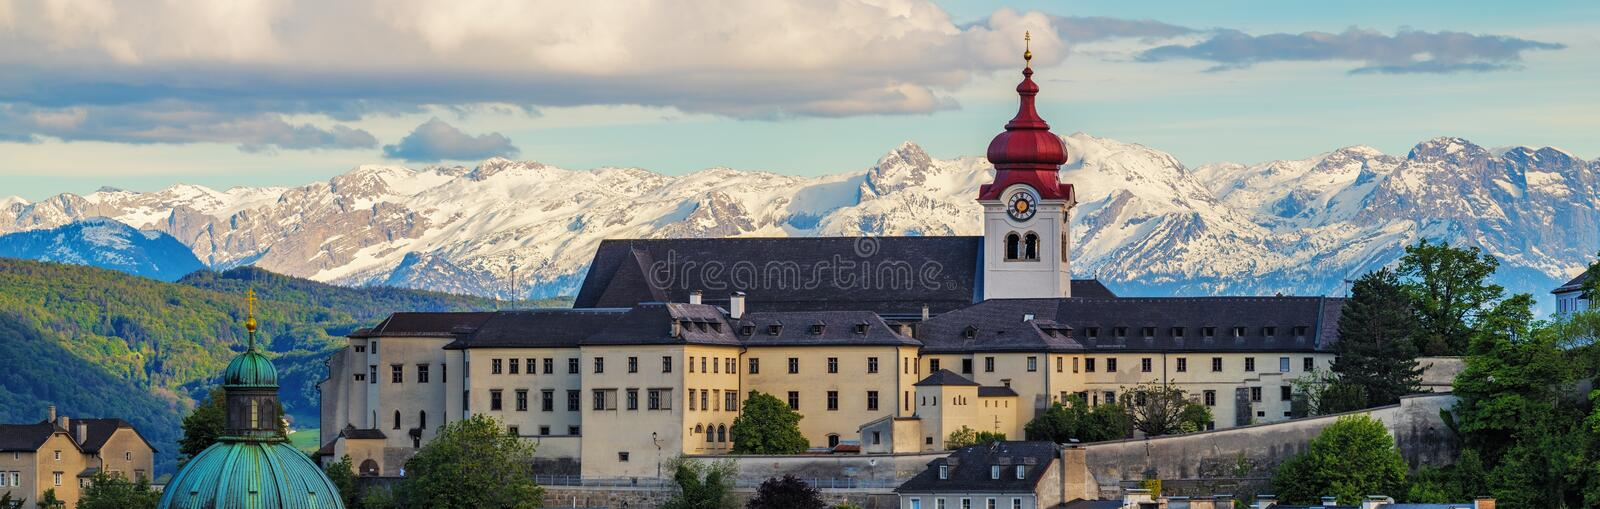 View to Salzburg Skylinel, Austria. Salzburg is an Austrian city on the border of Germany, with views of the Eastern Alps stock photo